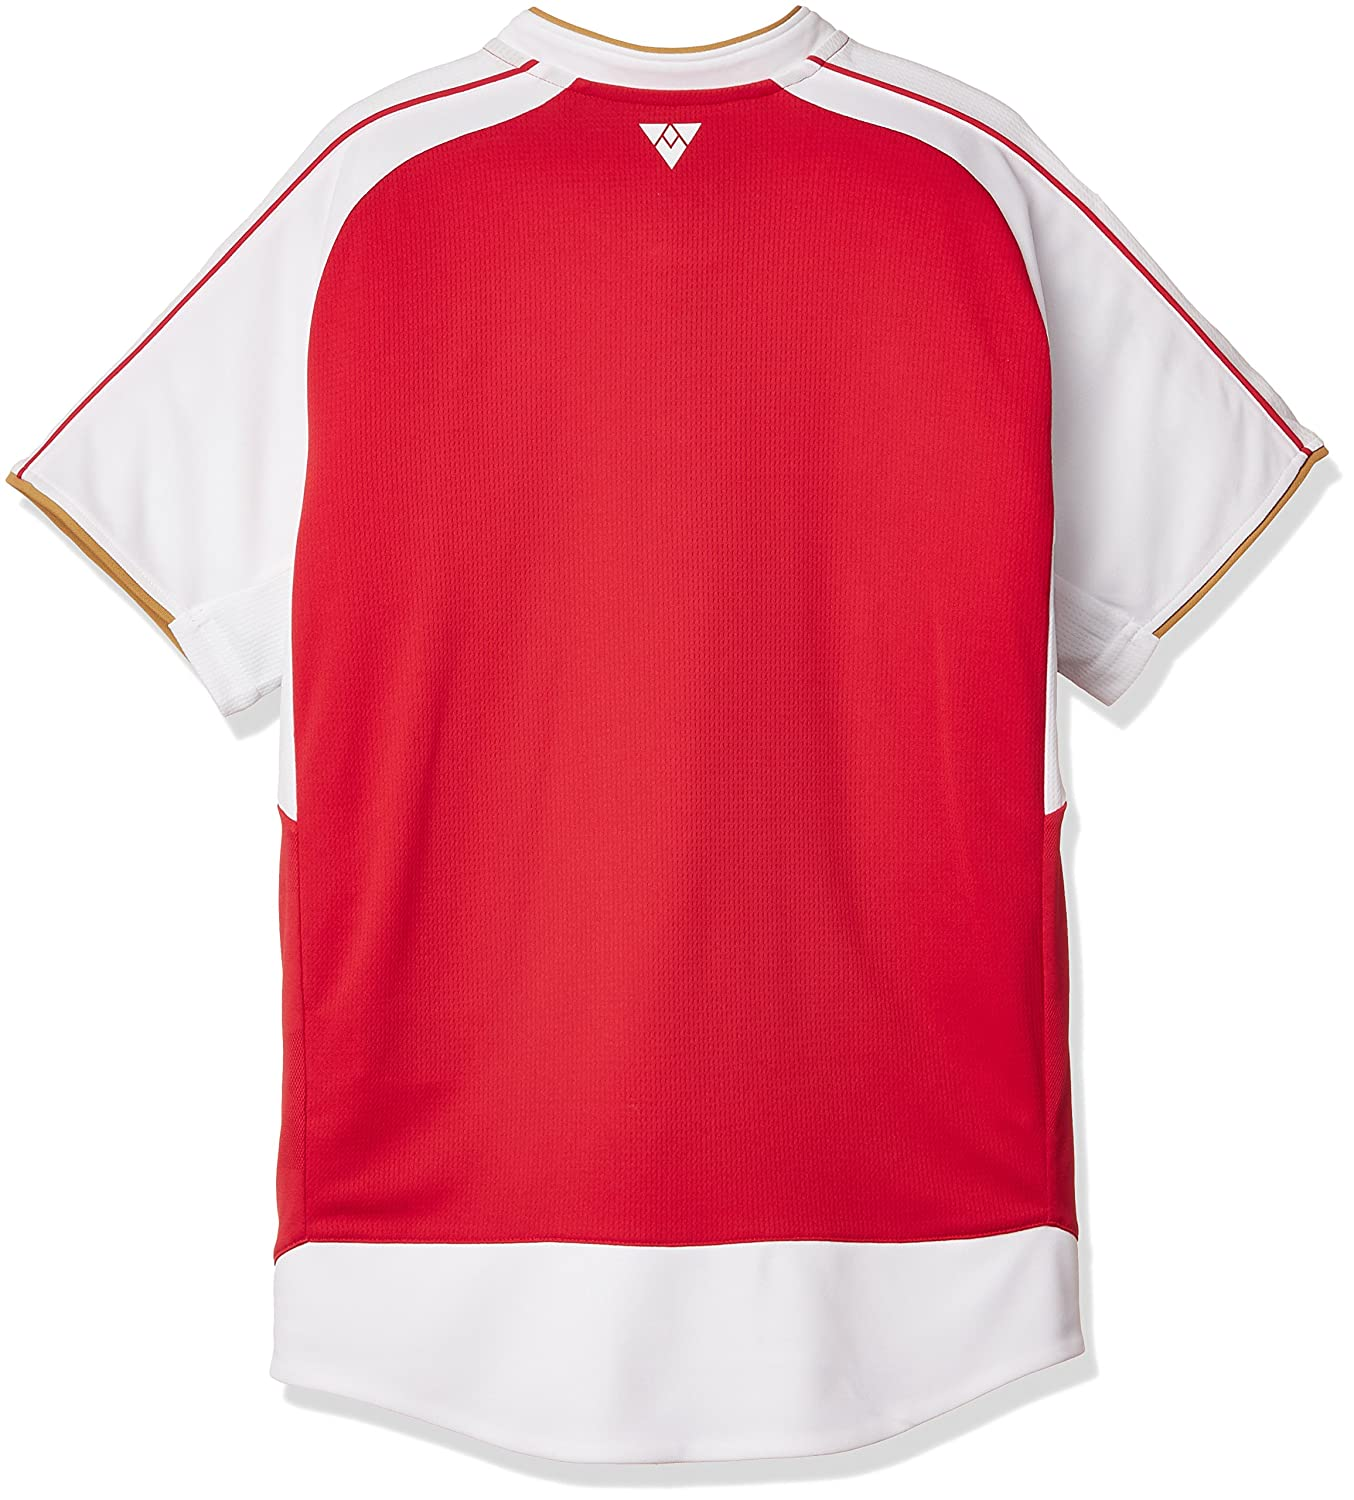 fe78388effb Amazon.com : PUMA Arsenal FC 2015/16 S/S Home Jersey - Adult -  Red/White/Gold - : Sports & Outdoors